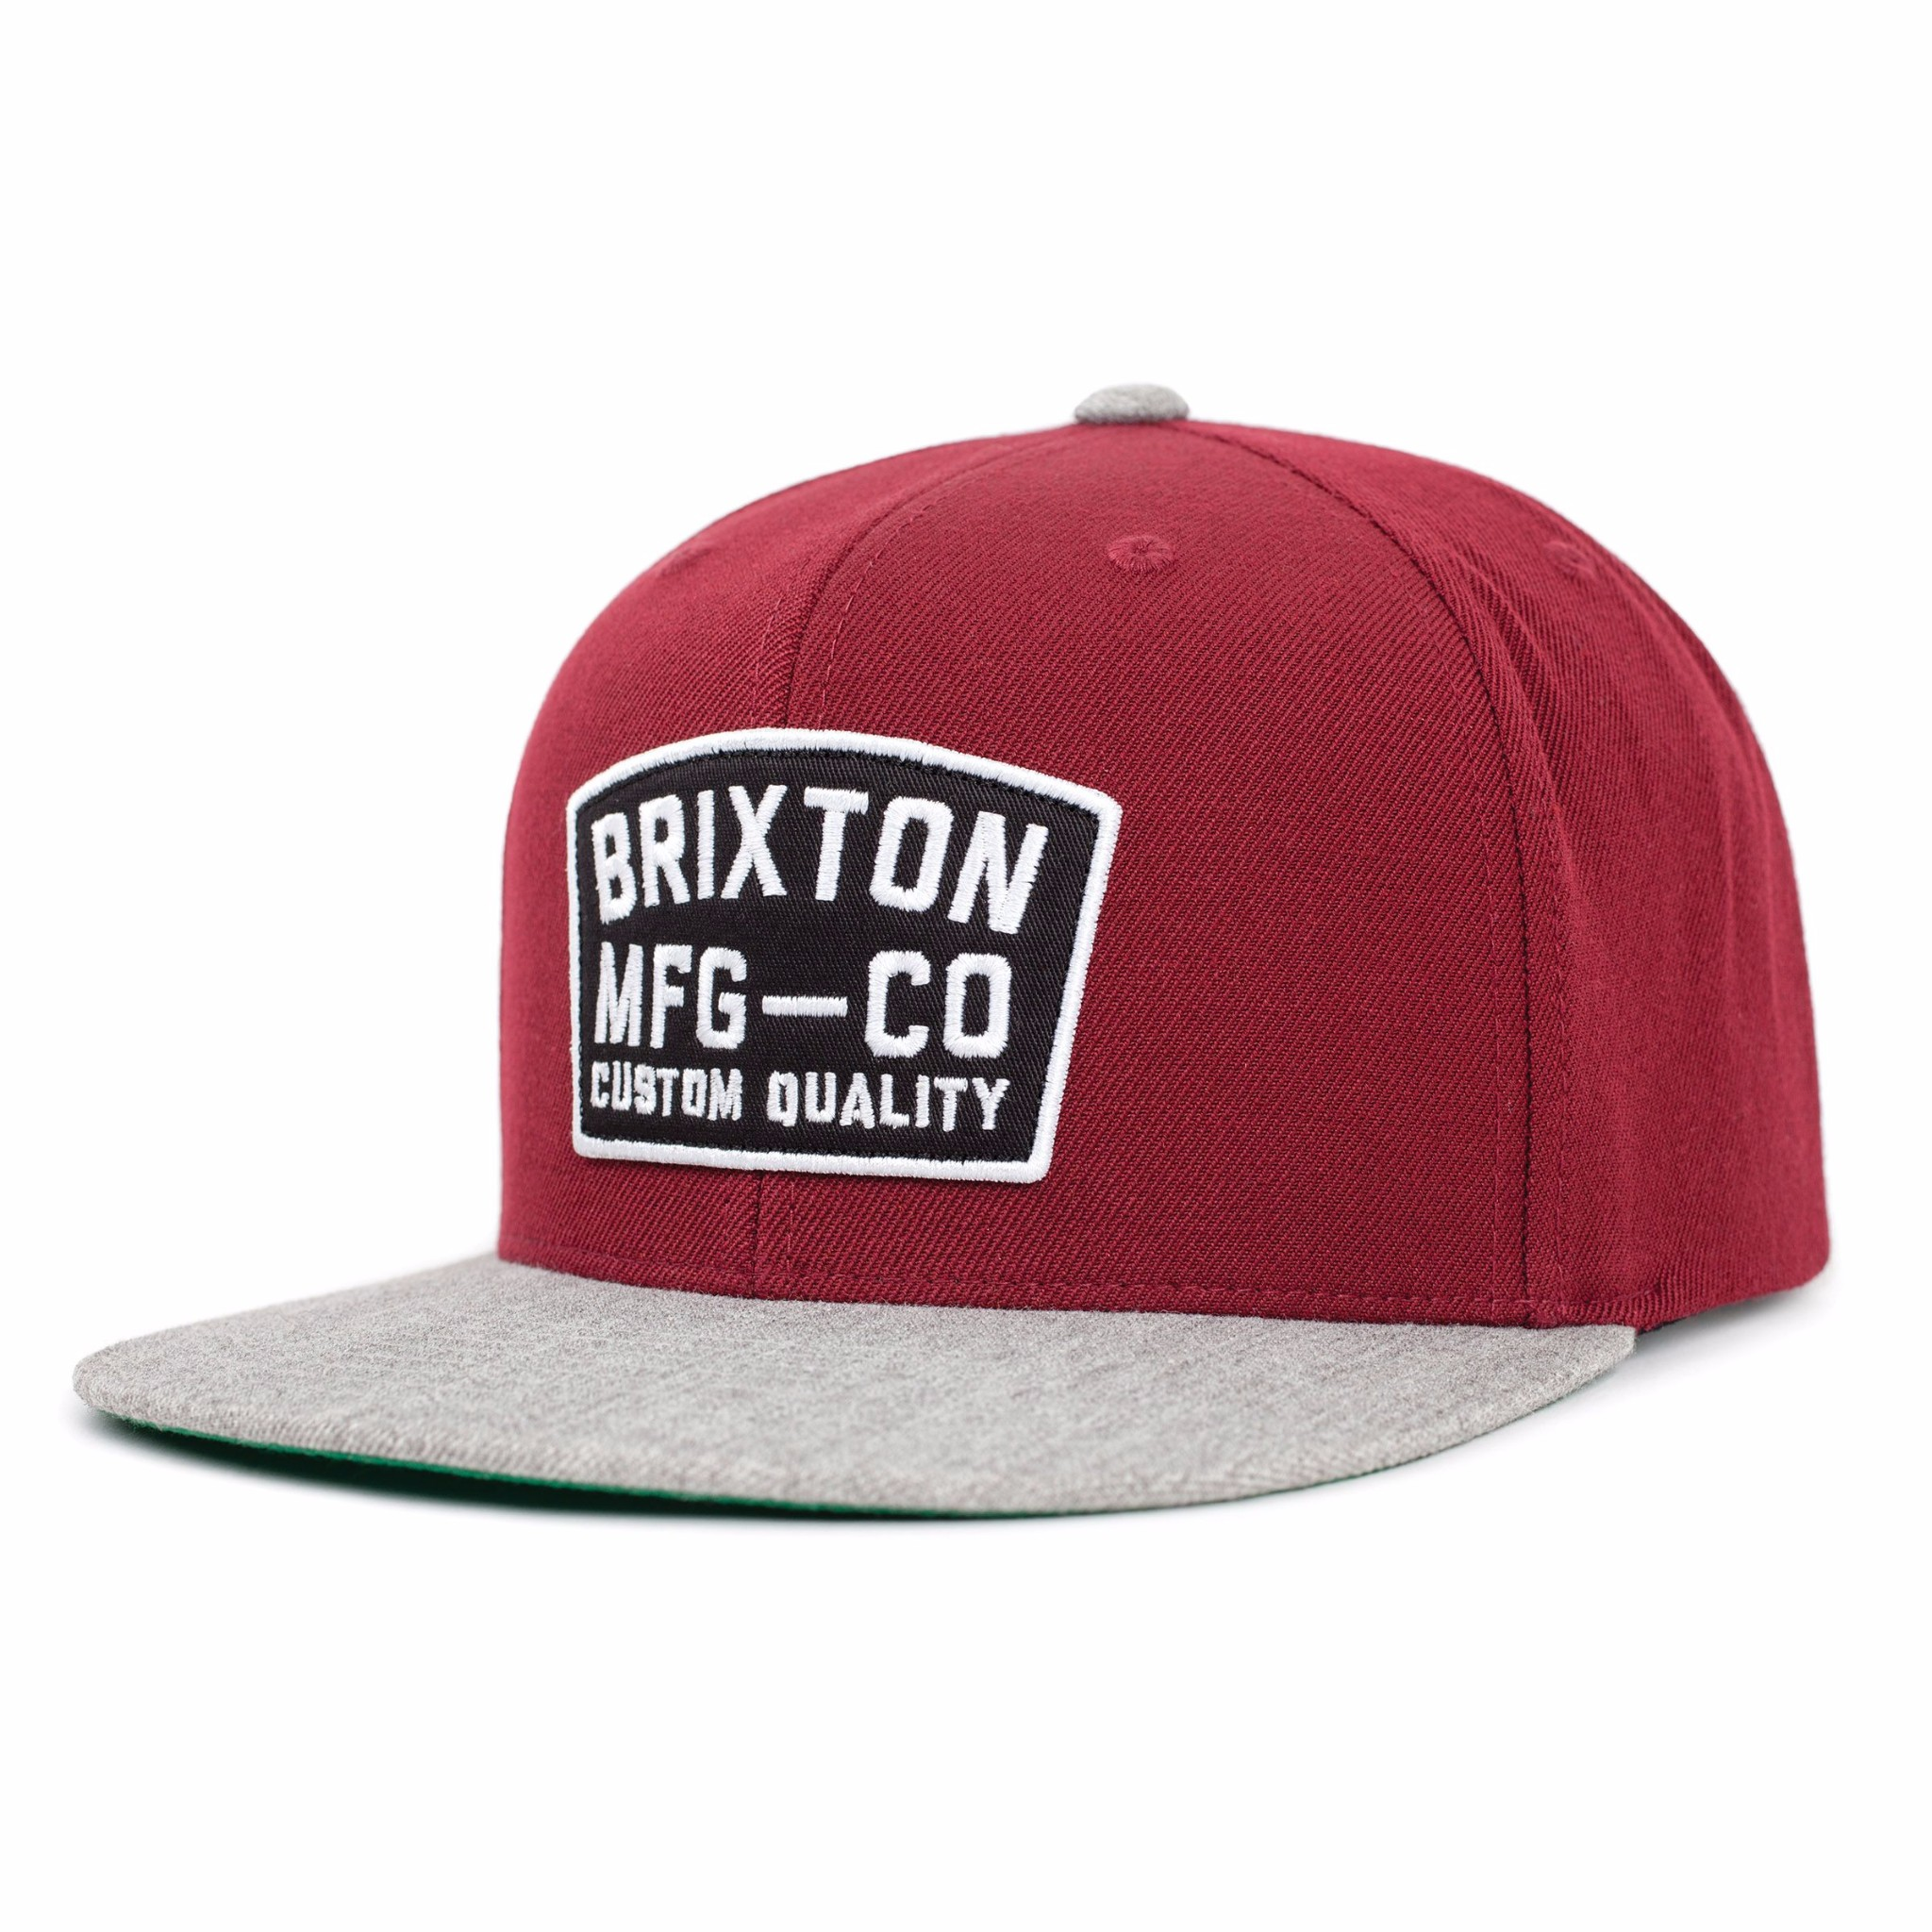 Brixton Cap National Burgundy Light Heather Grey Snapback Skateboard Hat